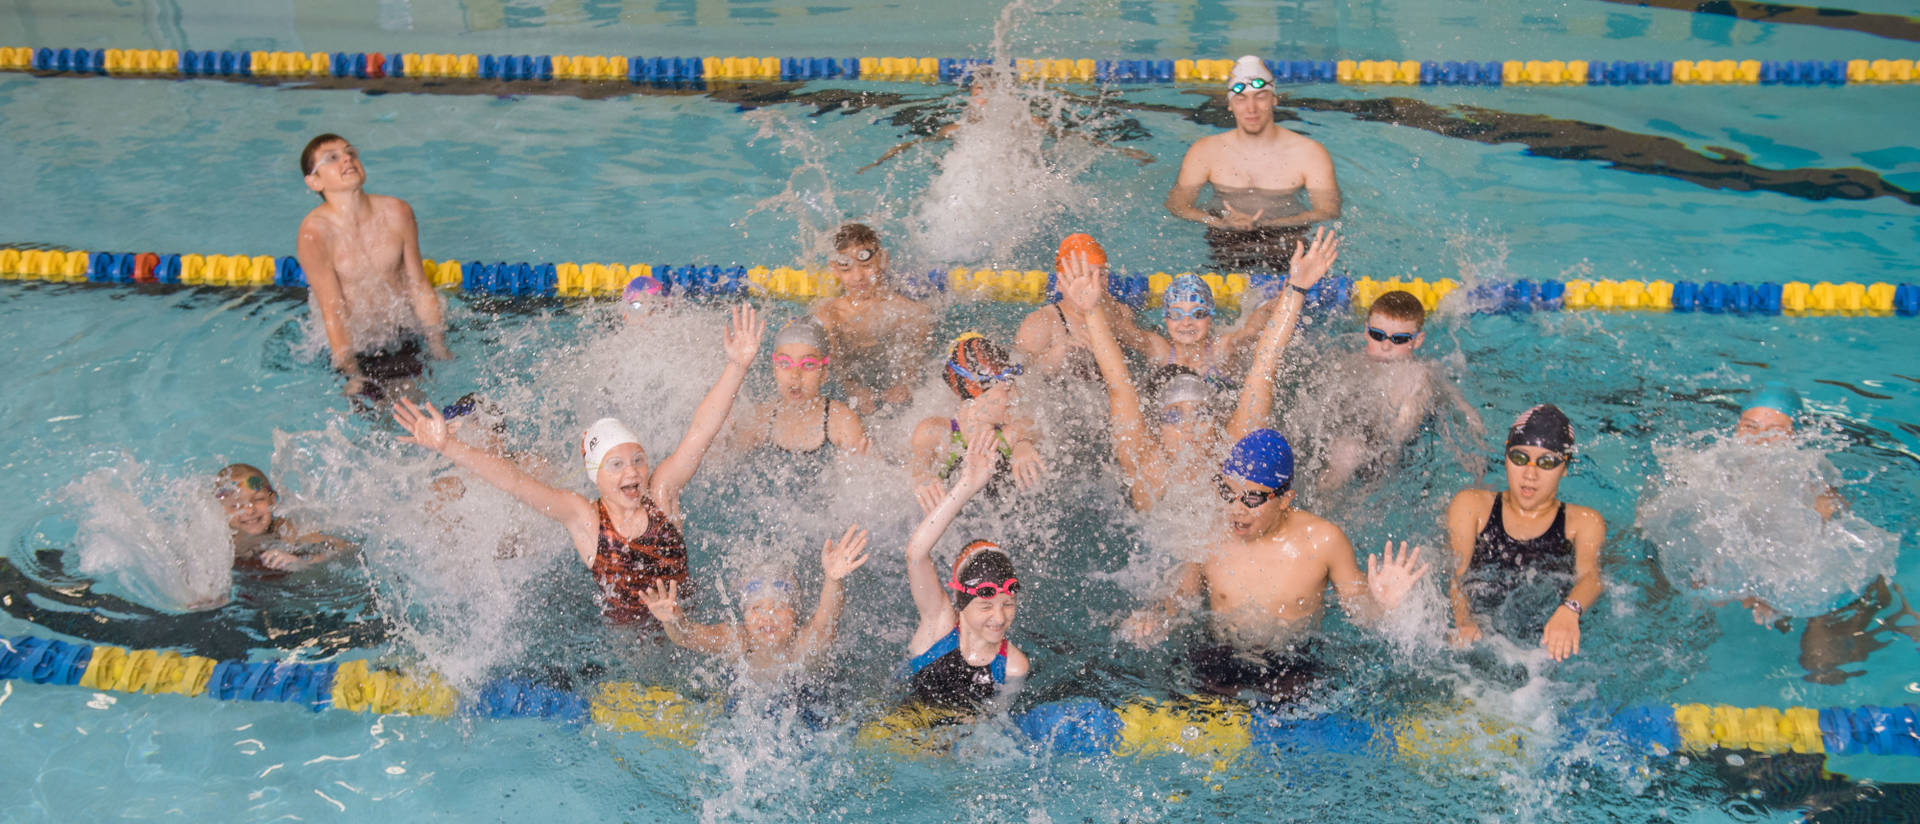 UWEC Swim Camp Participants Splash in Pool